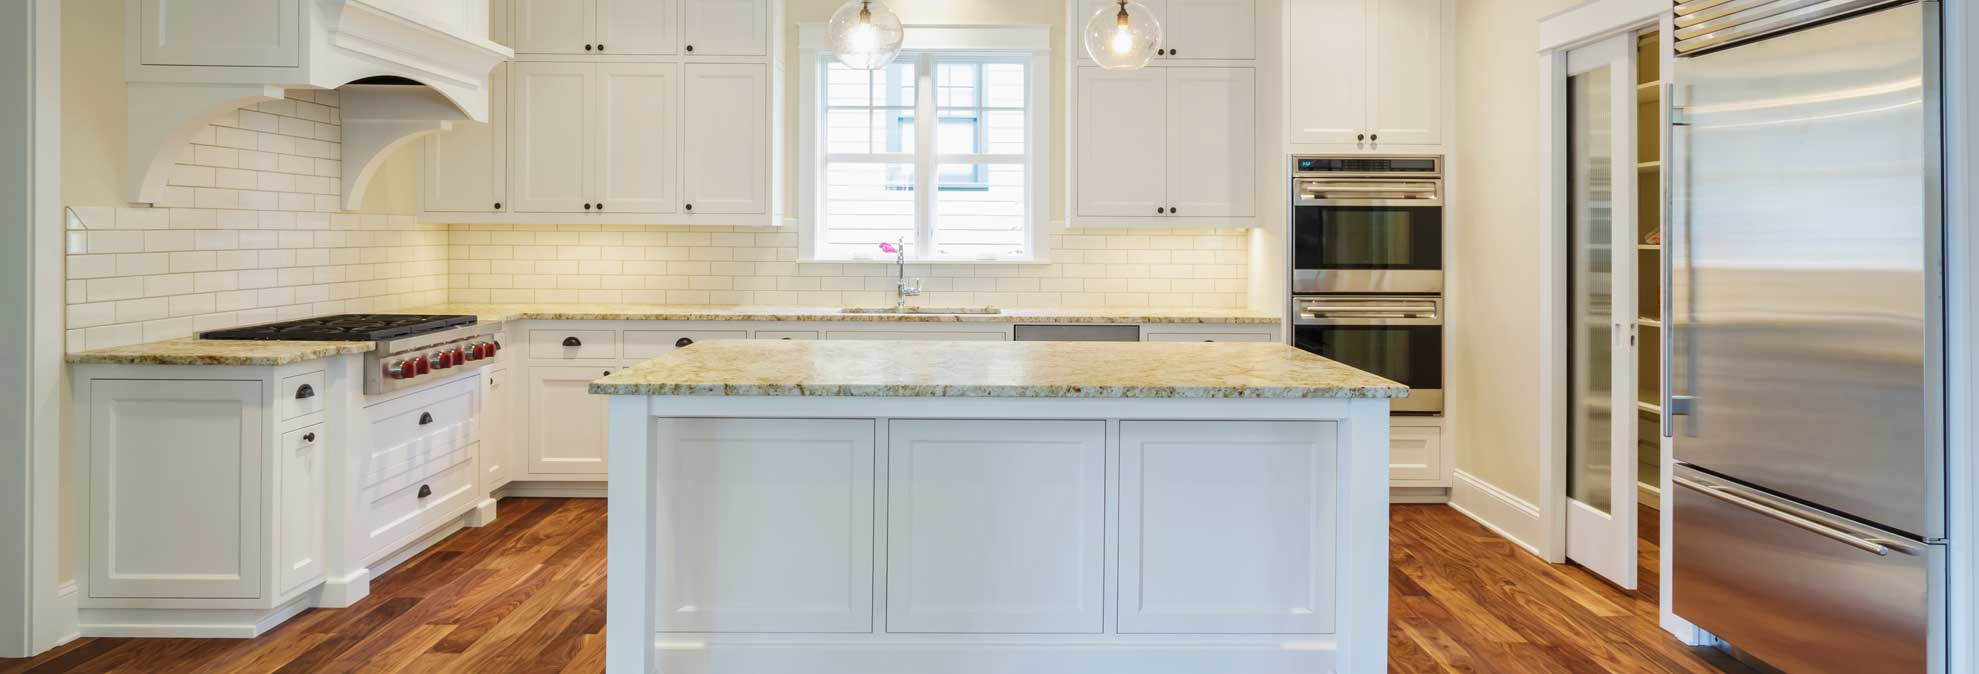 Remodel Design Kitchen Remodel Mistakes That Will Bust Your Budget Consumer Reports